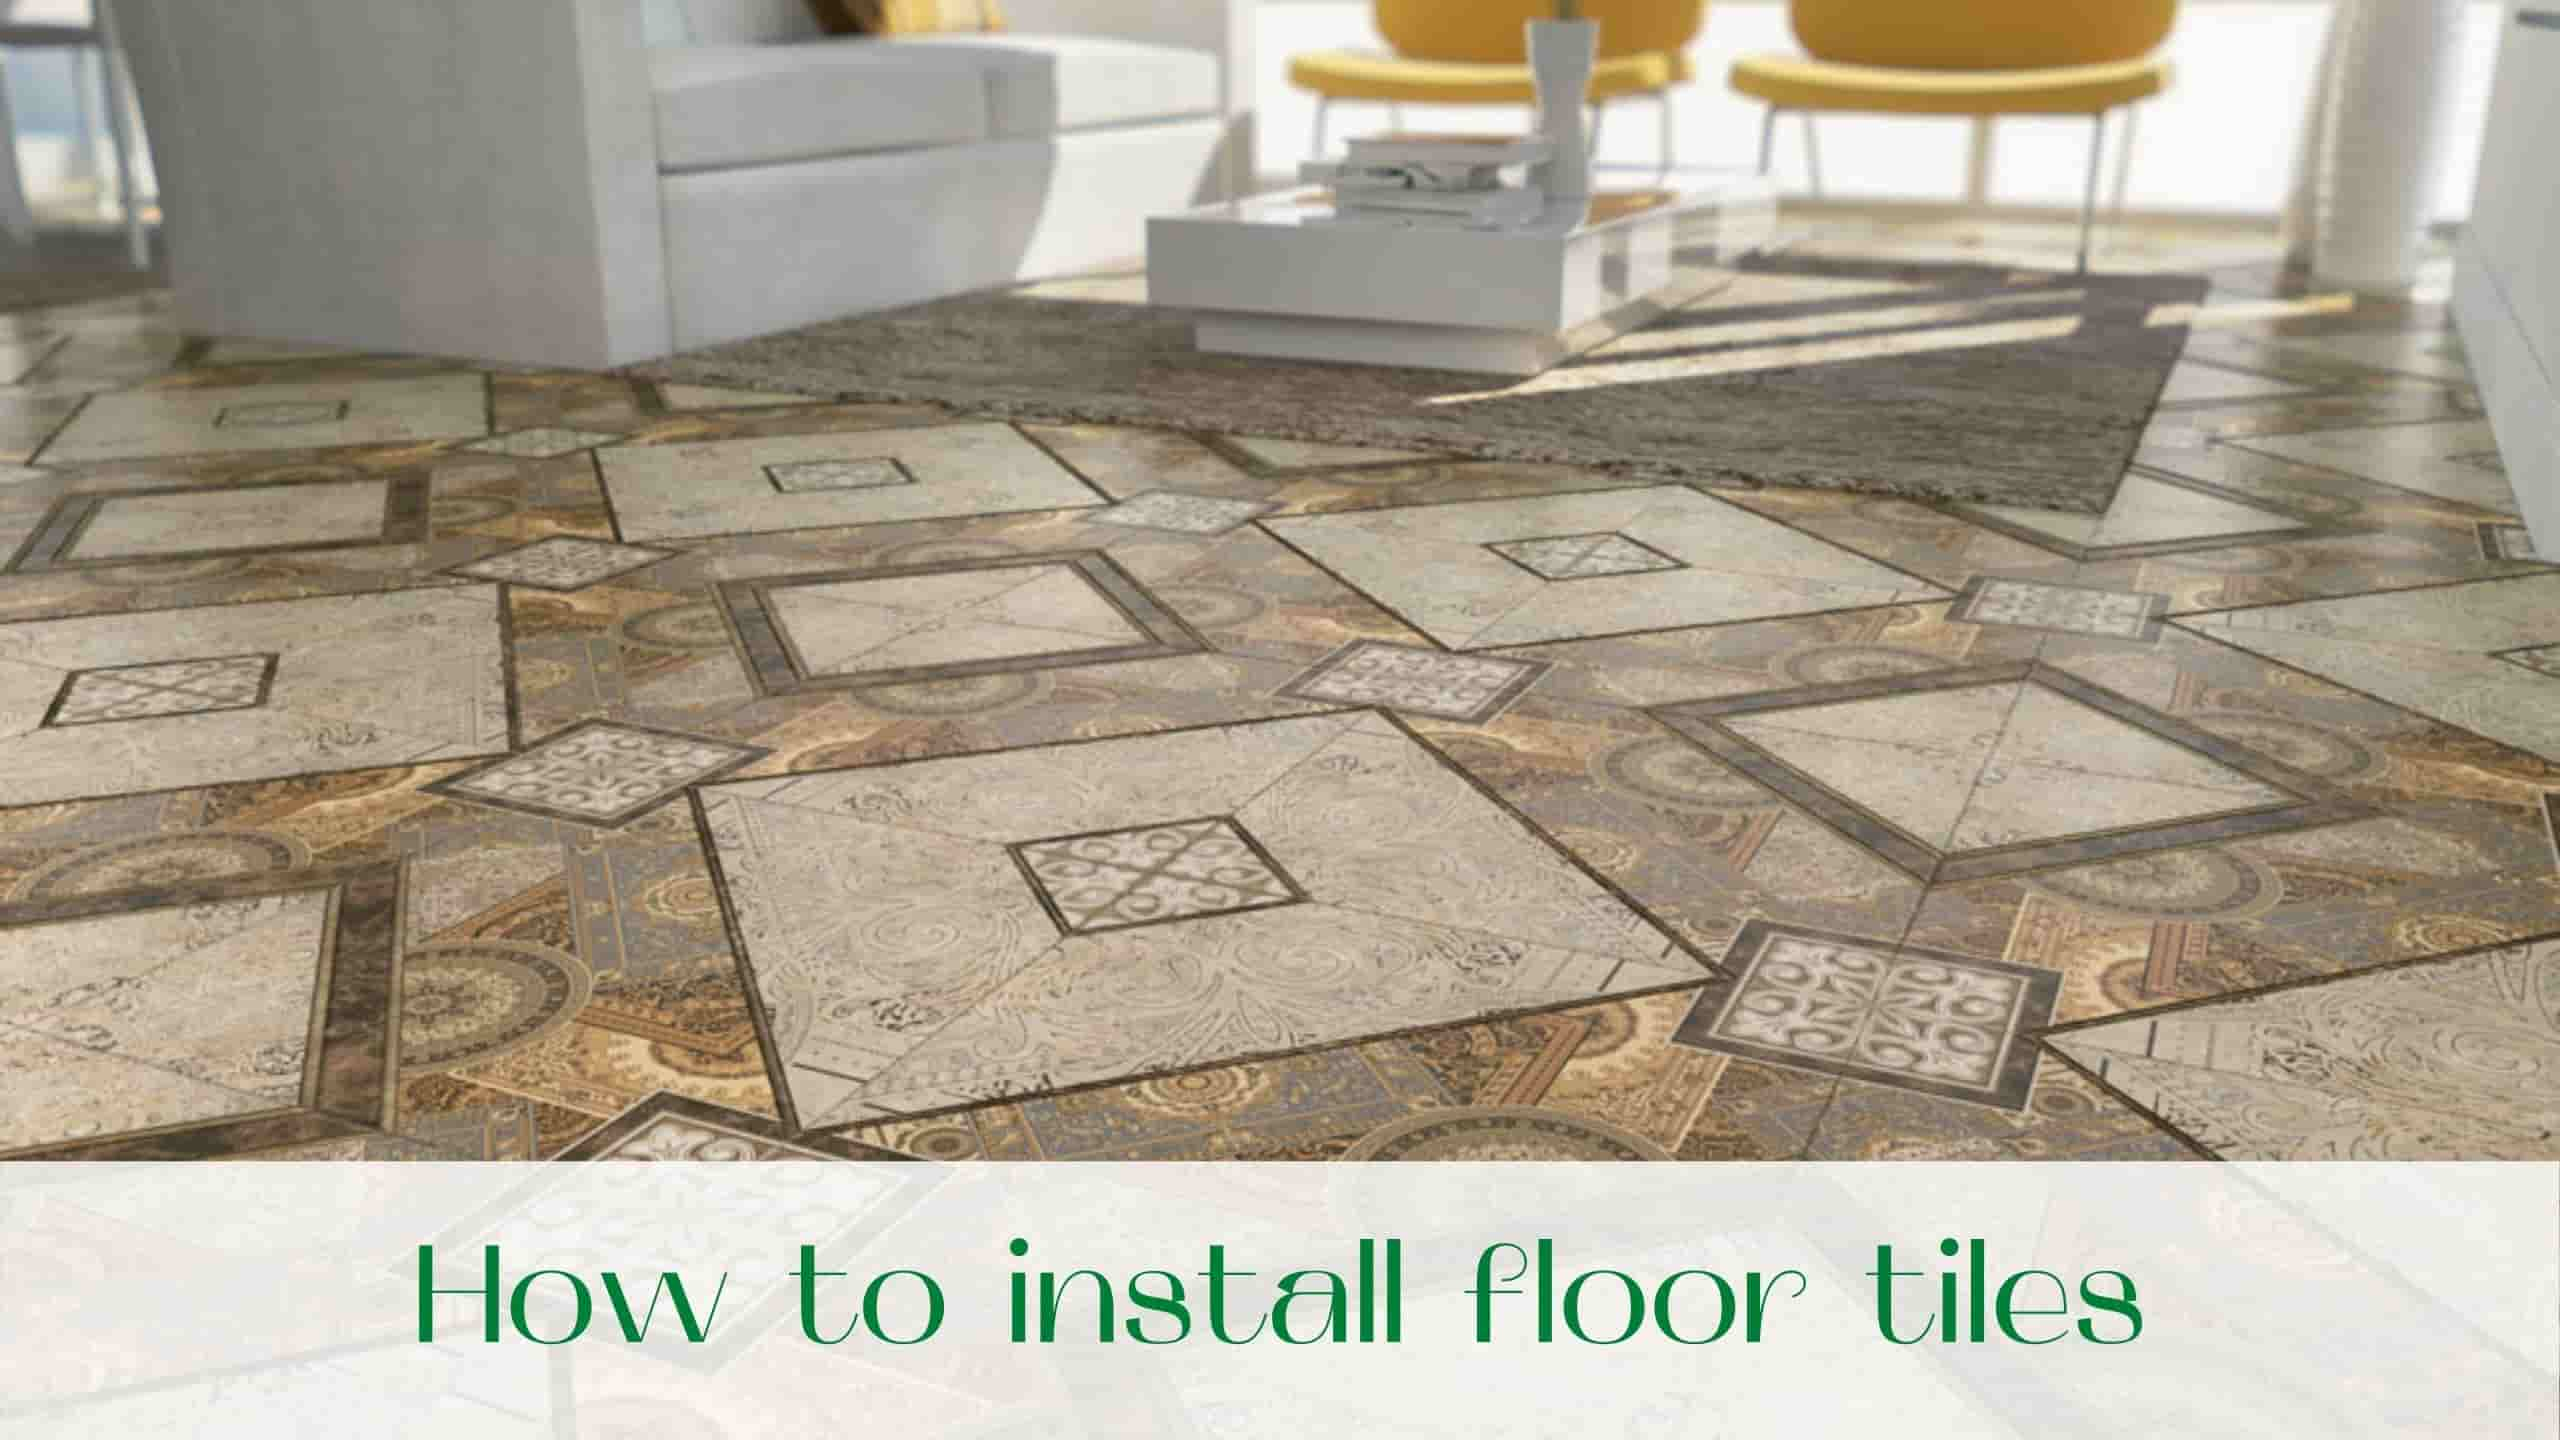 image-How-to-install-floor-tiles